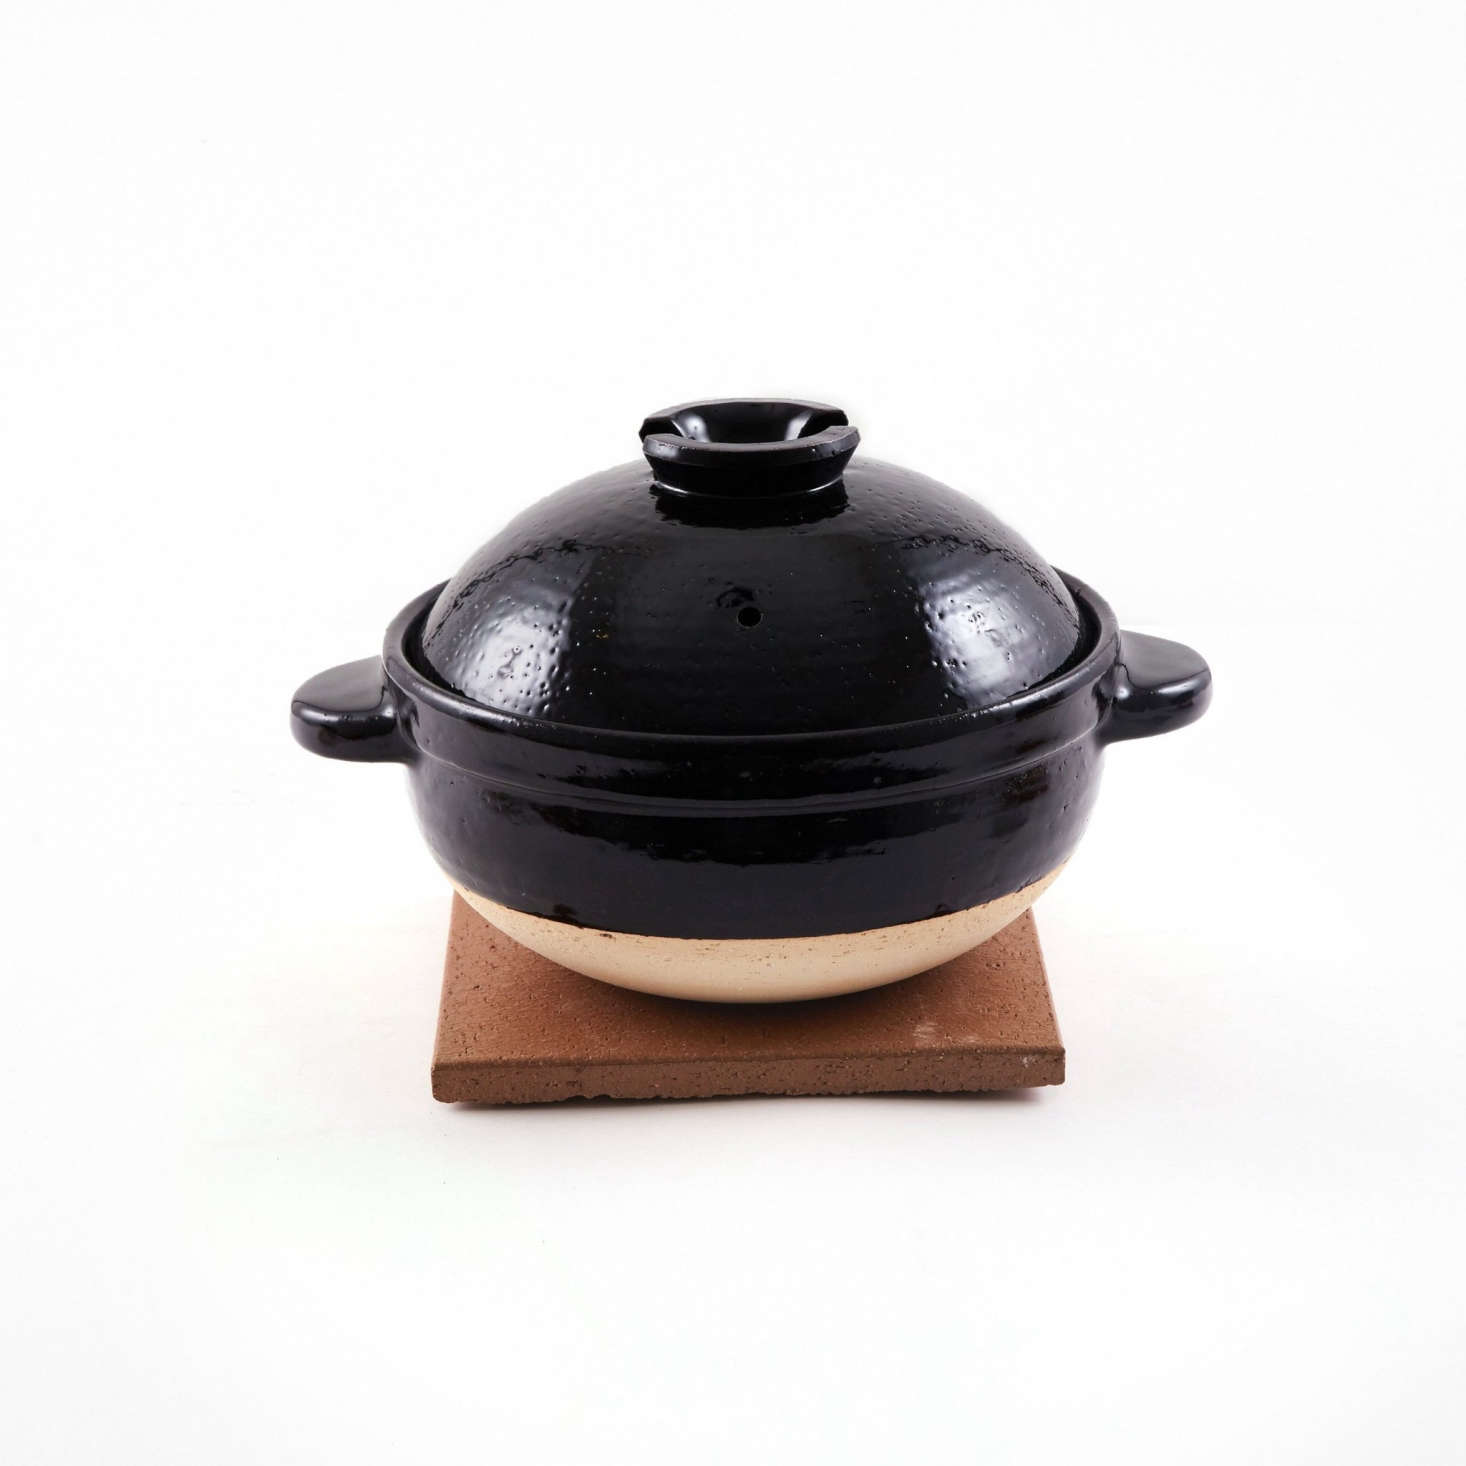 The Kamado-san double-lid donabe is the classic donabe for rice: It has a porous clay body designed to heat rice gently, and a double-lid system that functions like a pressure cooker. Prices start at $120 for a one-cup size; the three-cup pot, shown, is $180.